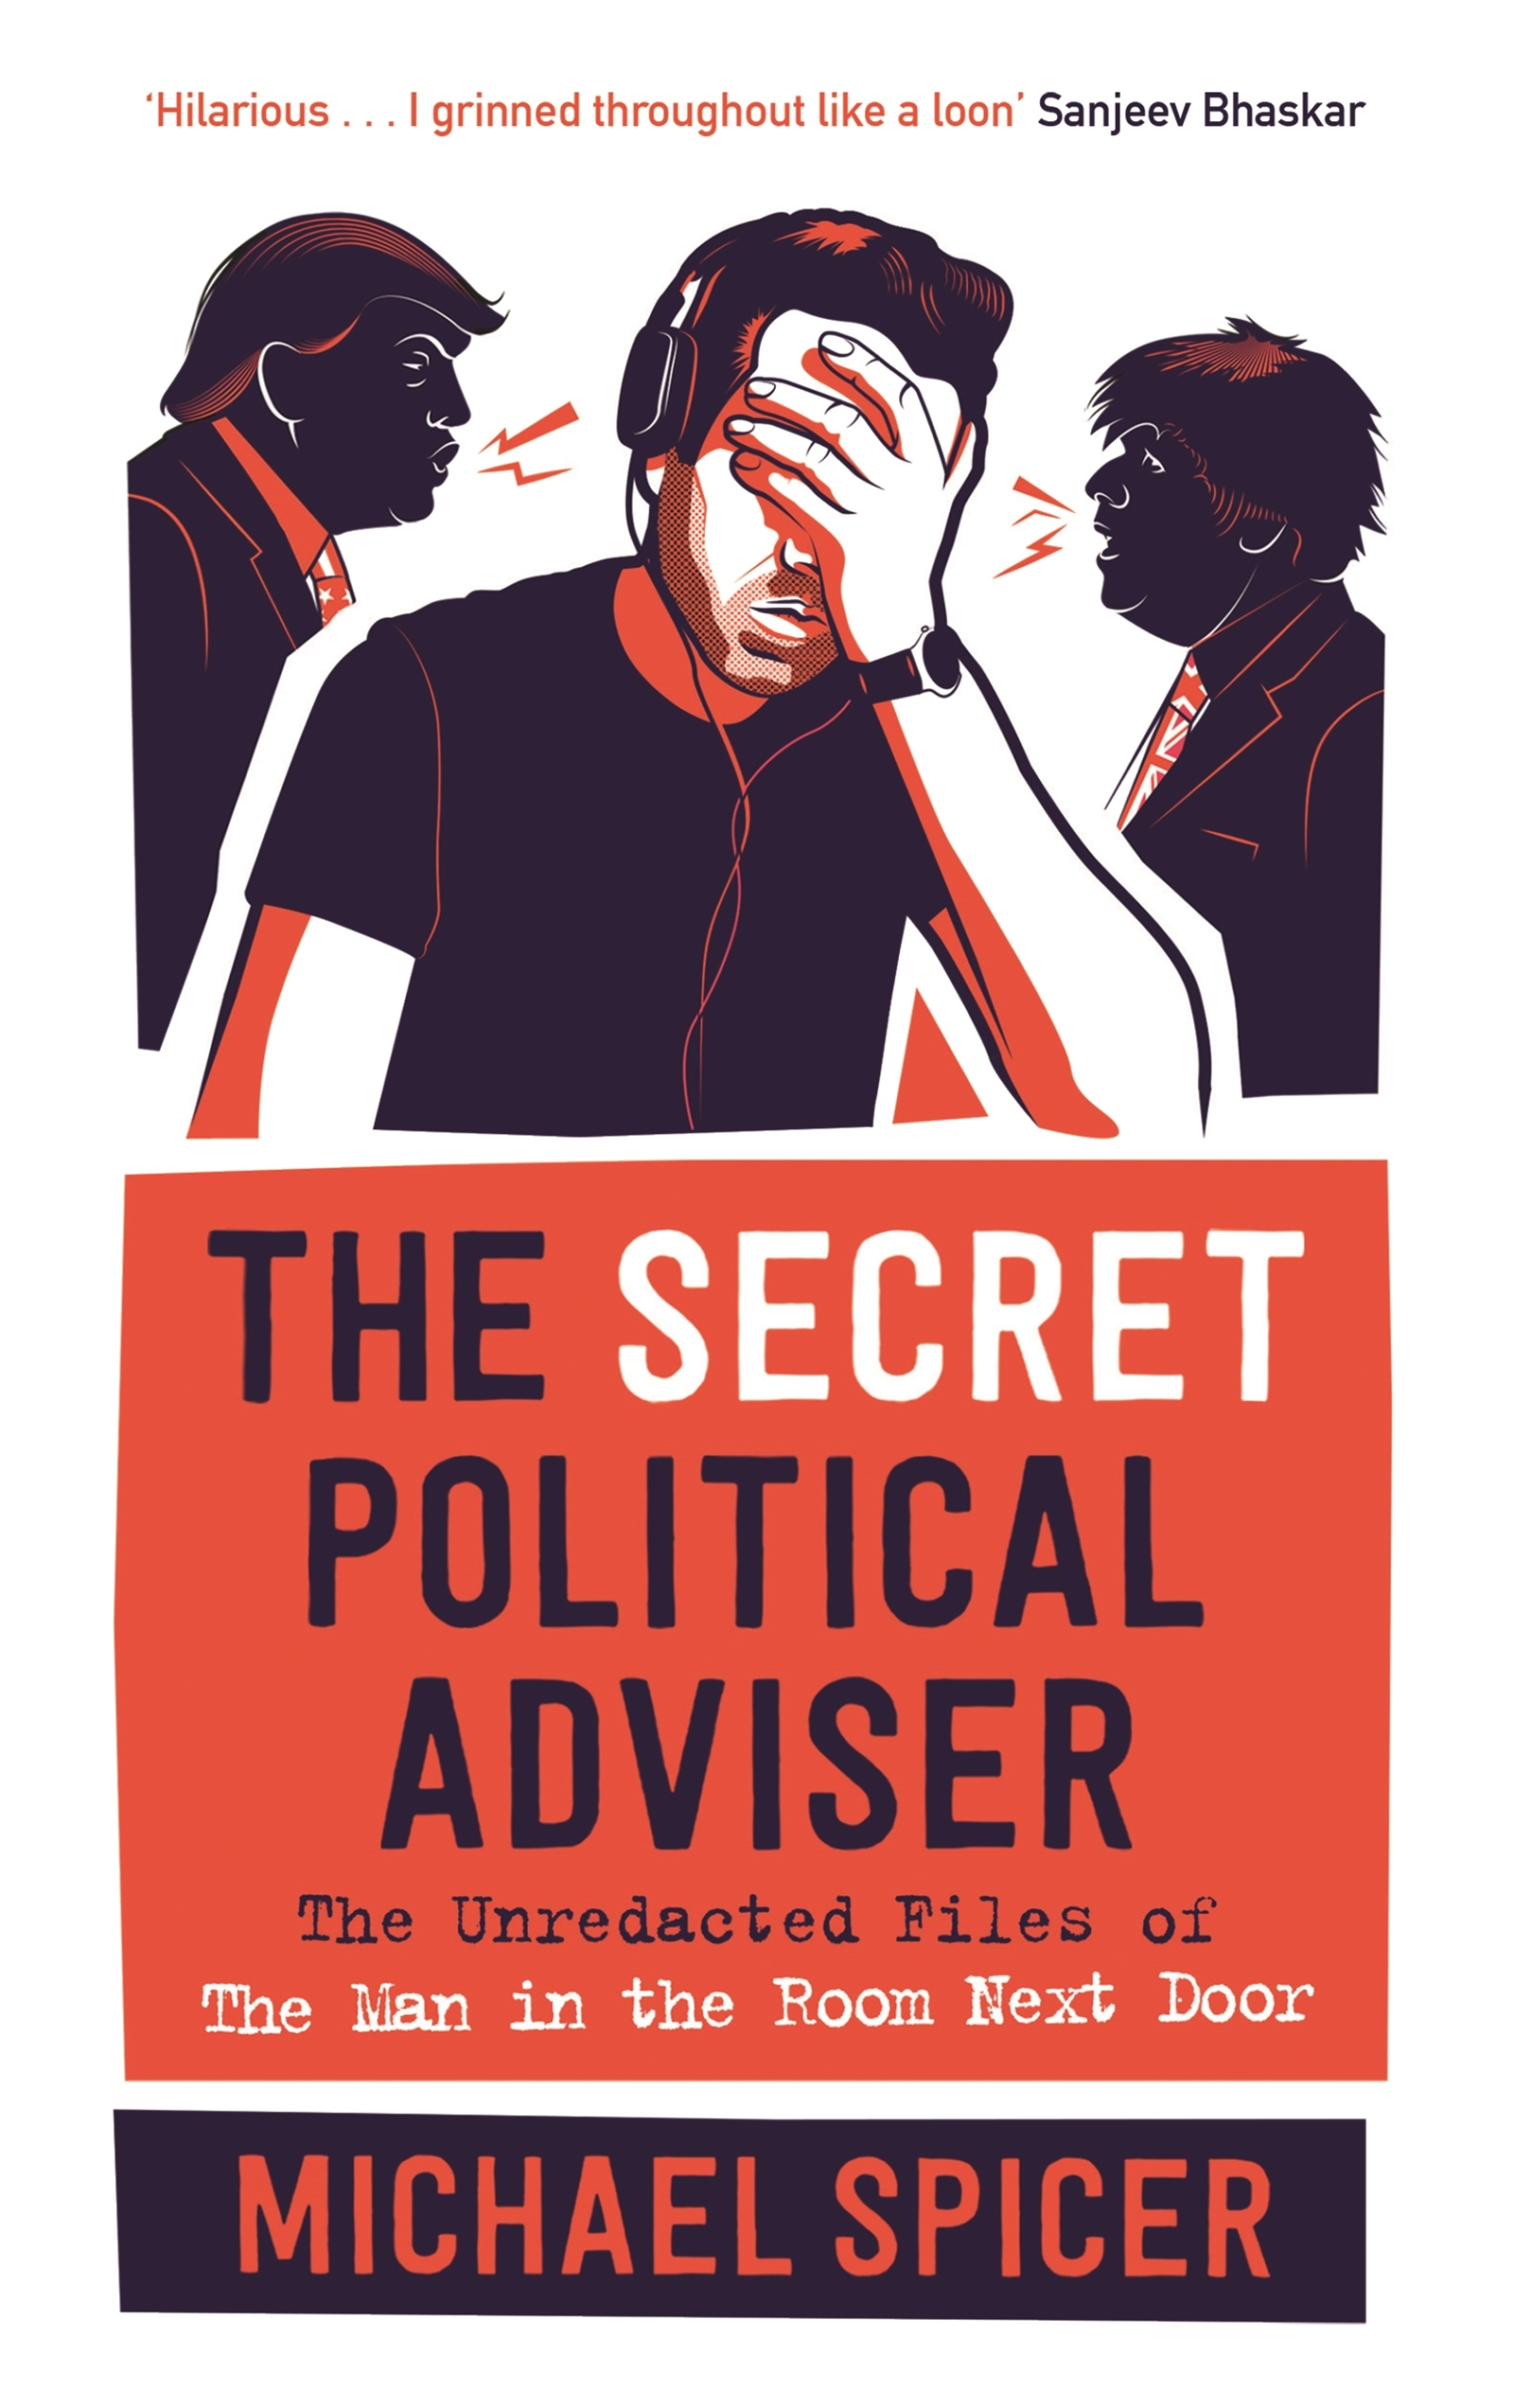 The Secret Political Adviser